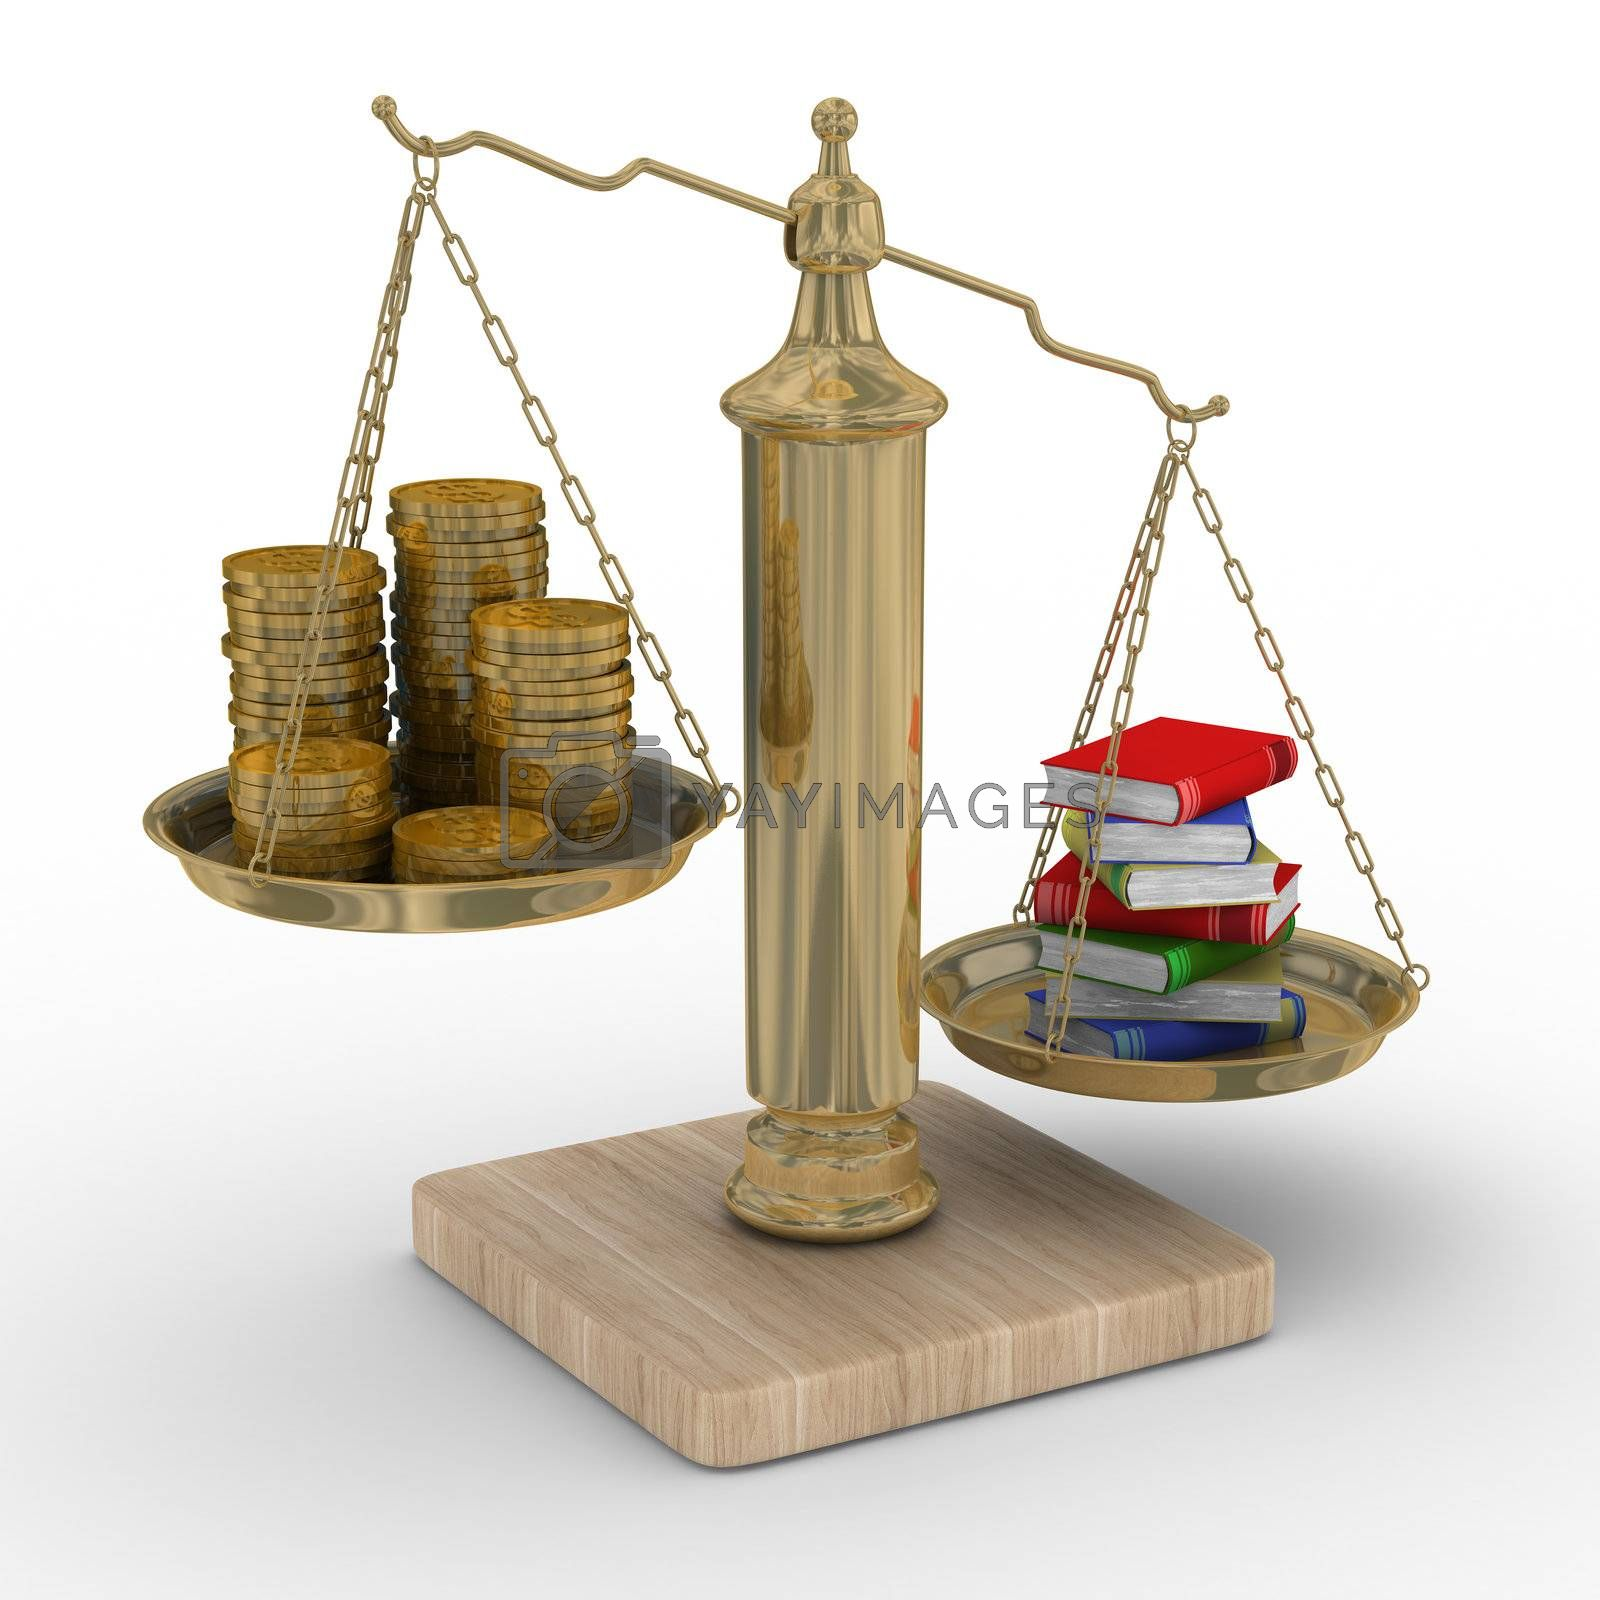 Royalty free image of Paid training. Isolated 3D image by ISerg